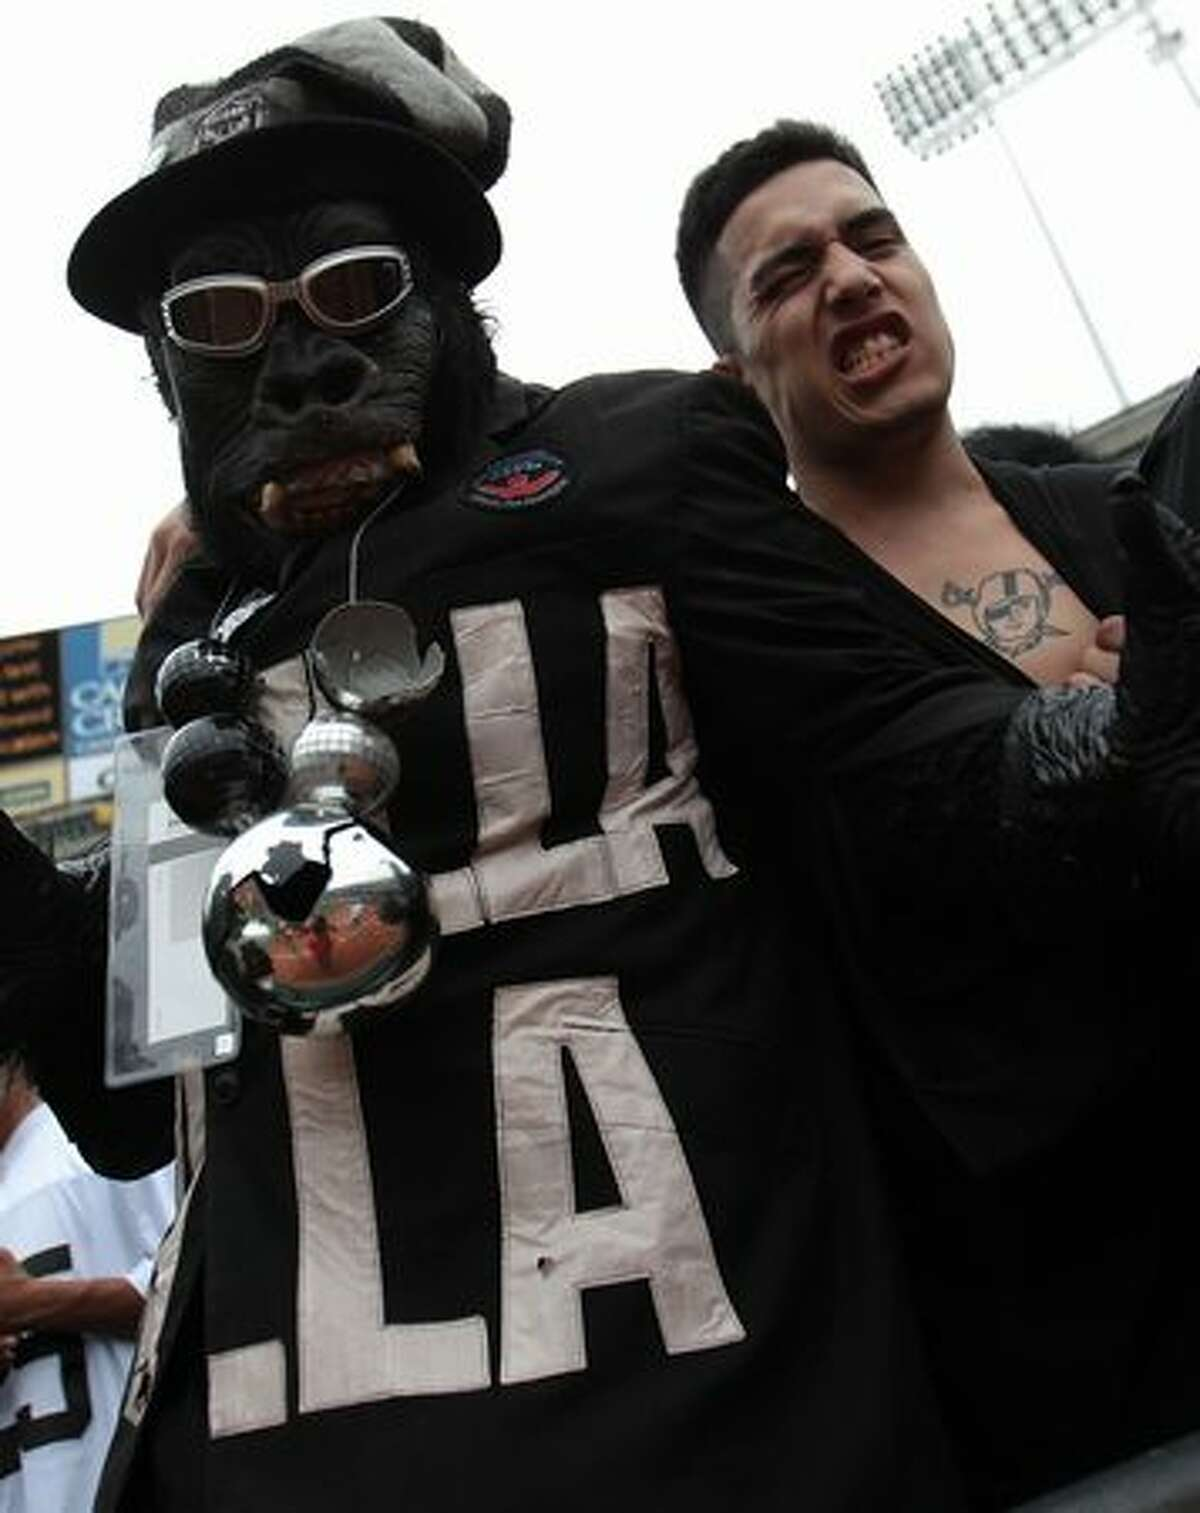 Fans of the Oakland Raiders cheer against the St. Louis Rams during an NFL game at Oakland-Alameda County Coliseum on September 19, 2010 in Oakland, California.